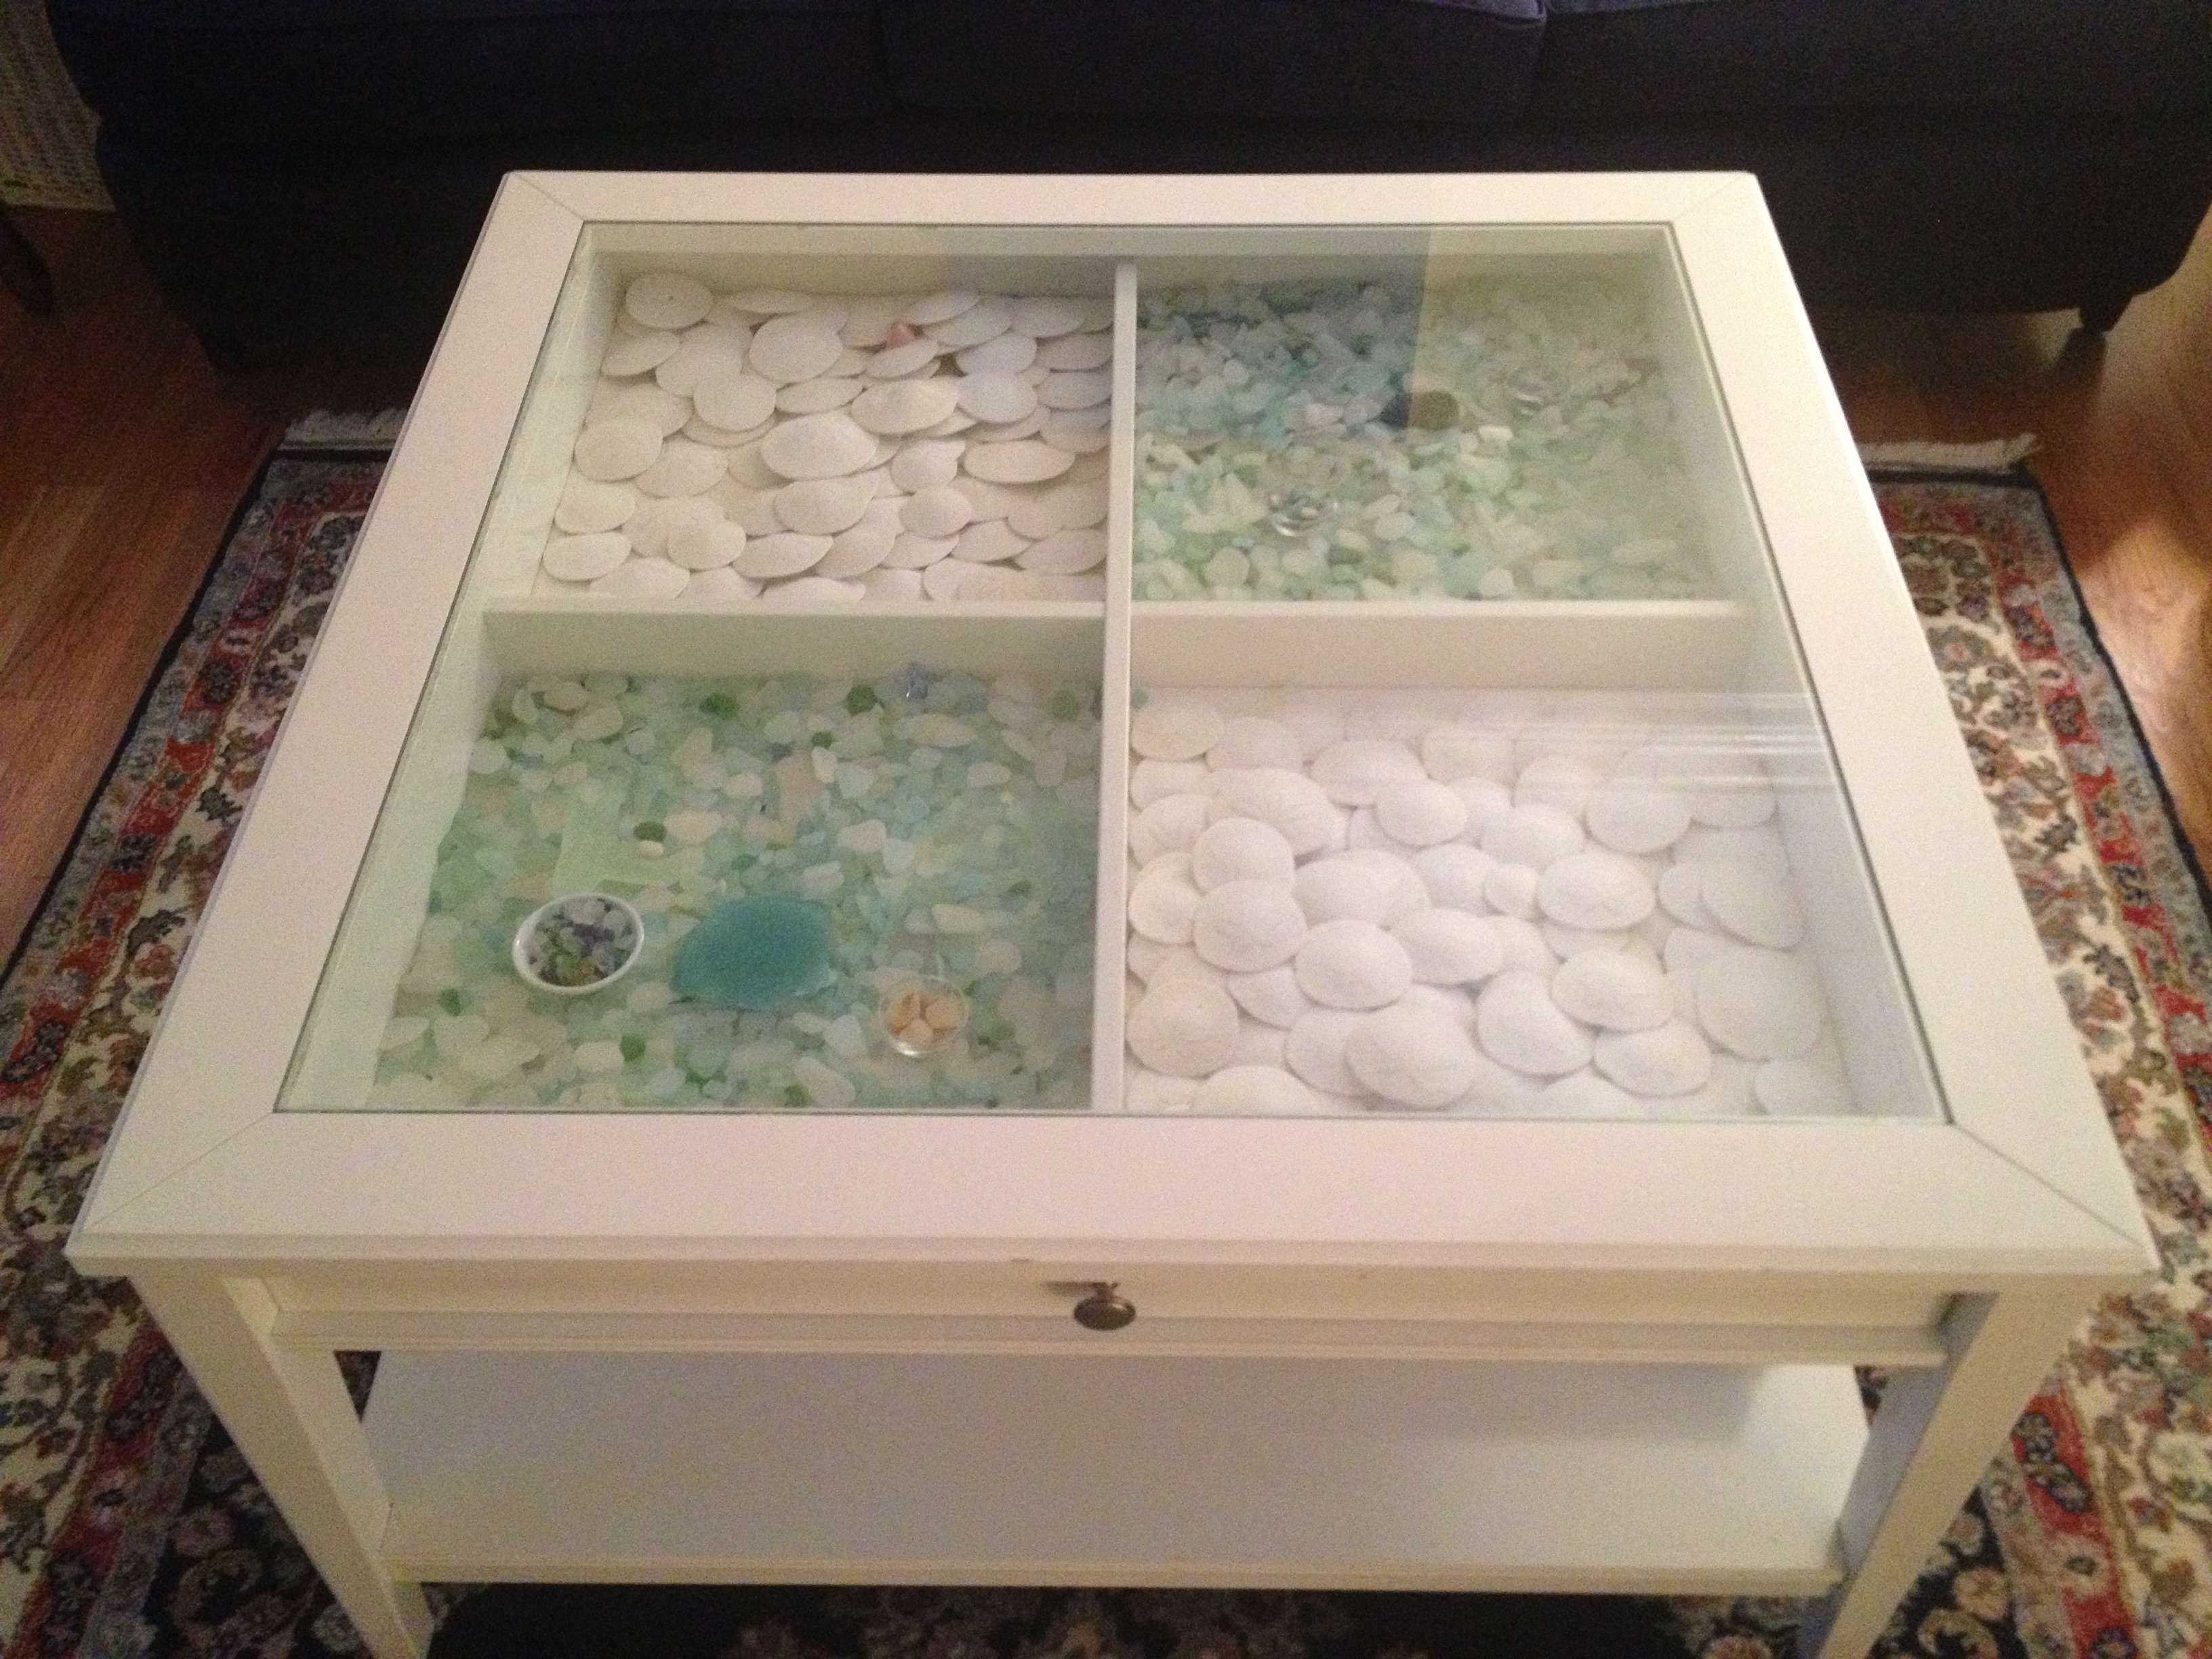 2018 Glass Top Display Coffee Tables With Drawers In Is Glass Top Display Coffee Table Any Good? Ten Ways You (View 1 of 20)